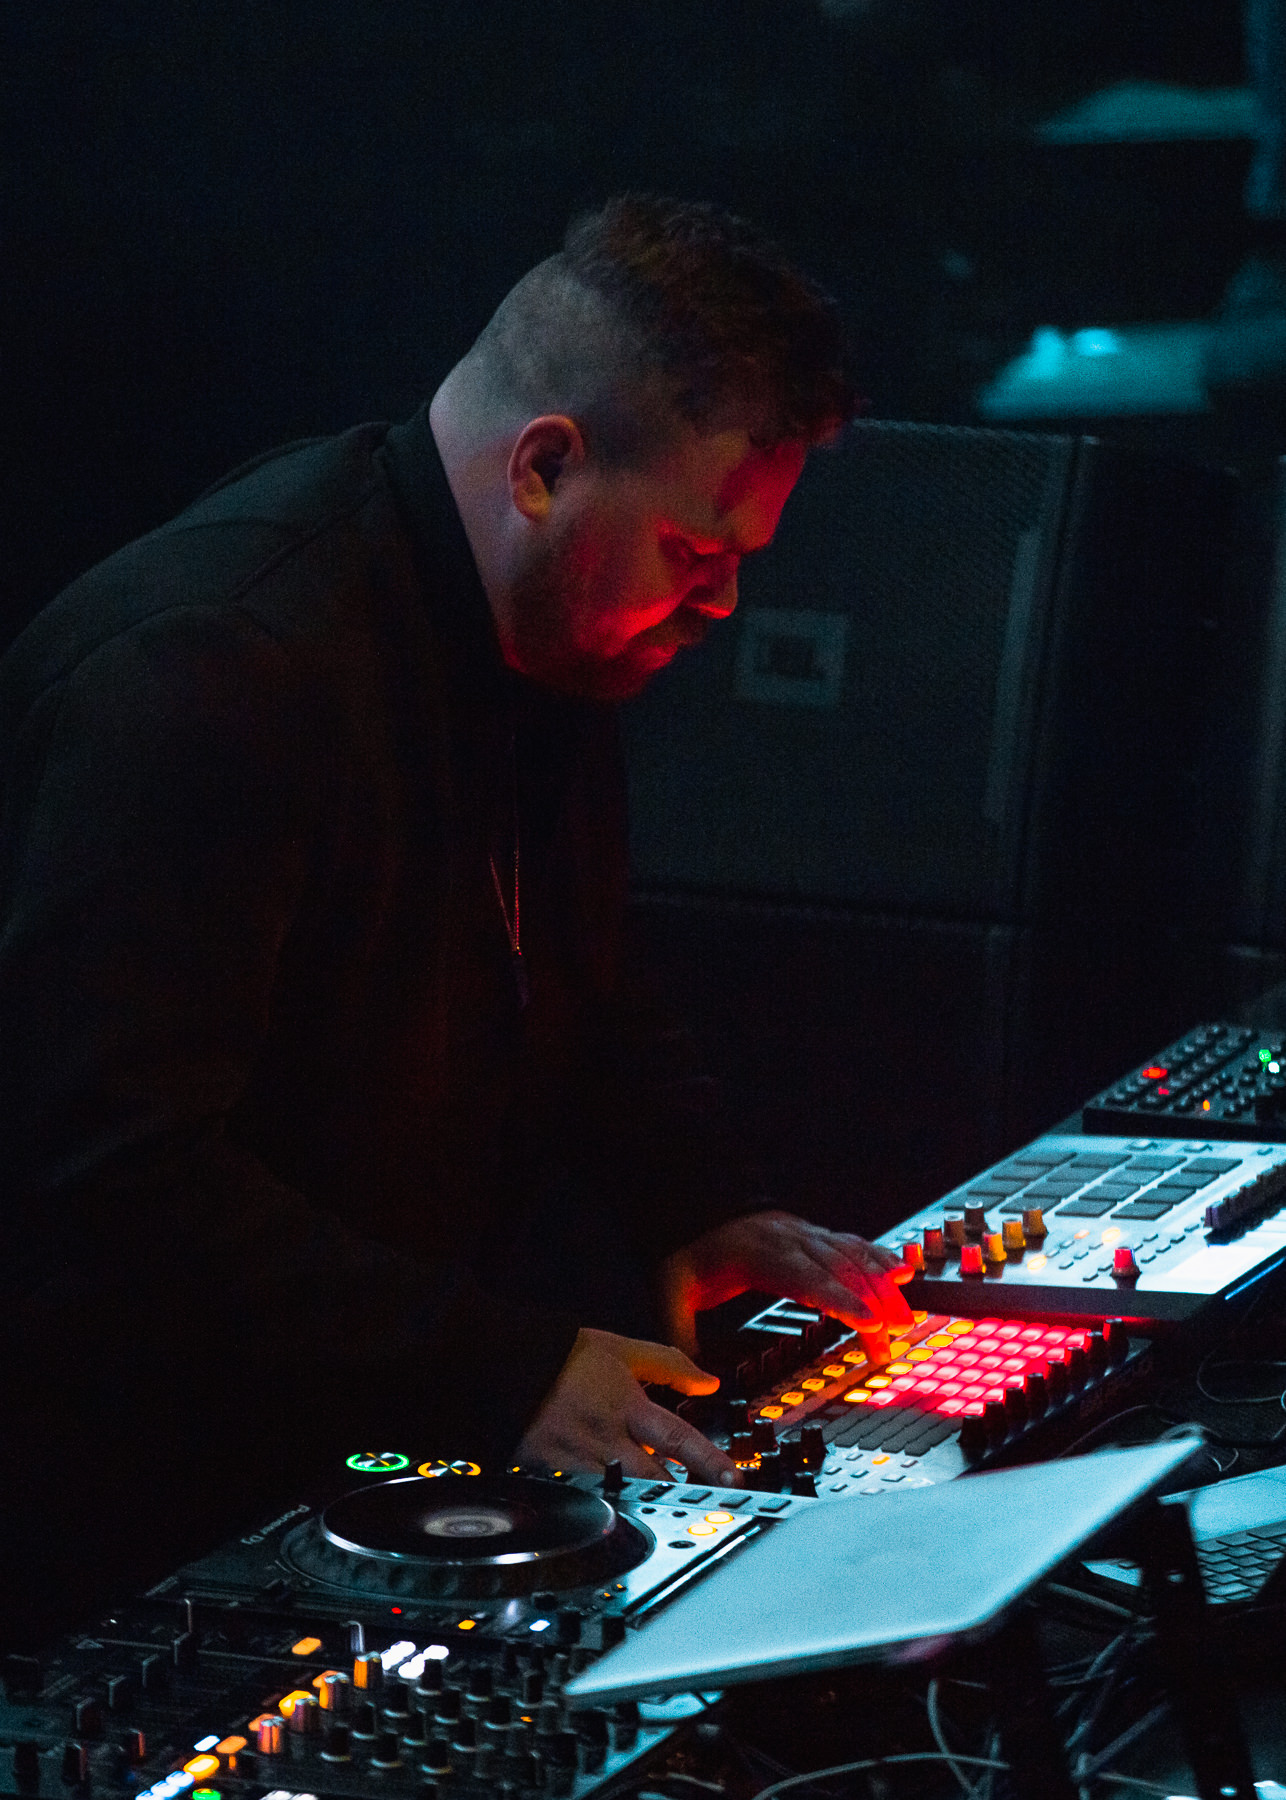 180318-kirby-gladstein-photograpy-com-truise-concert-exchange-LA-los-angeles-1000.jpg